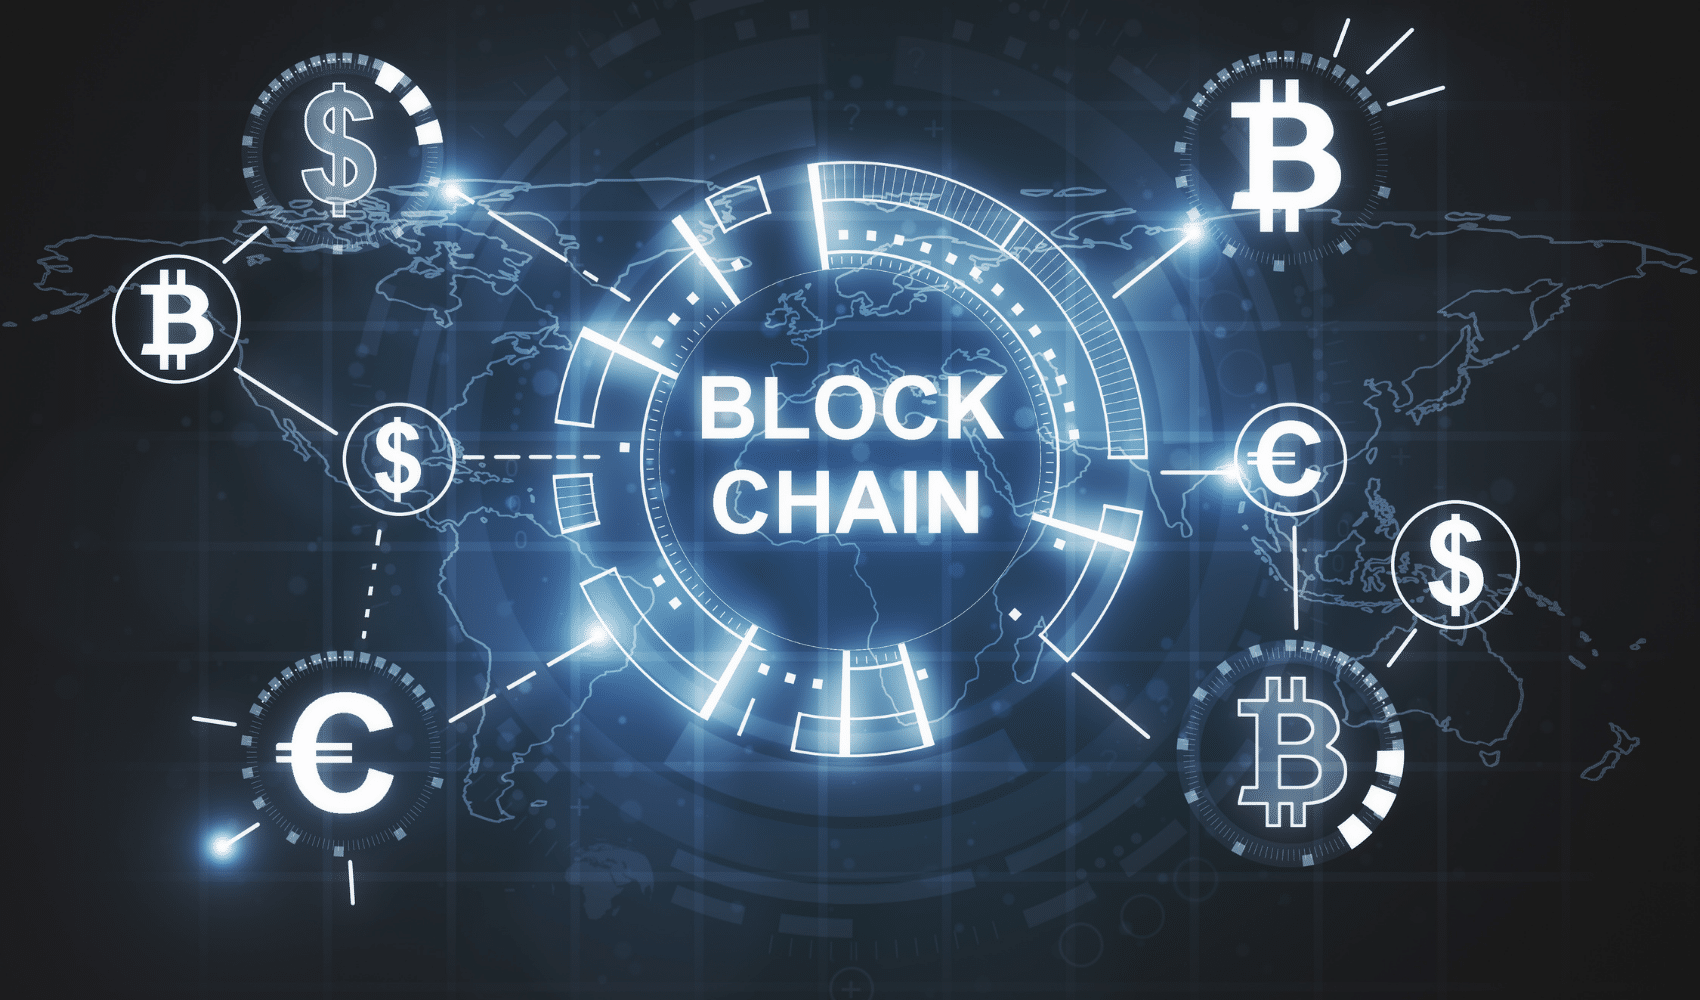 Use of Blockchain Technology for Reputation Management